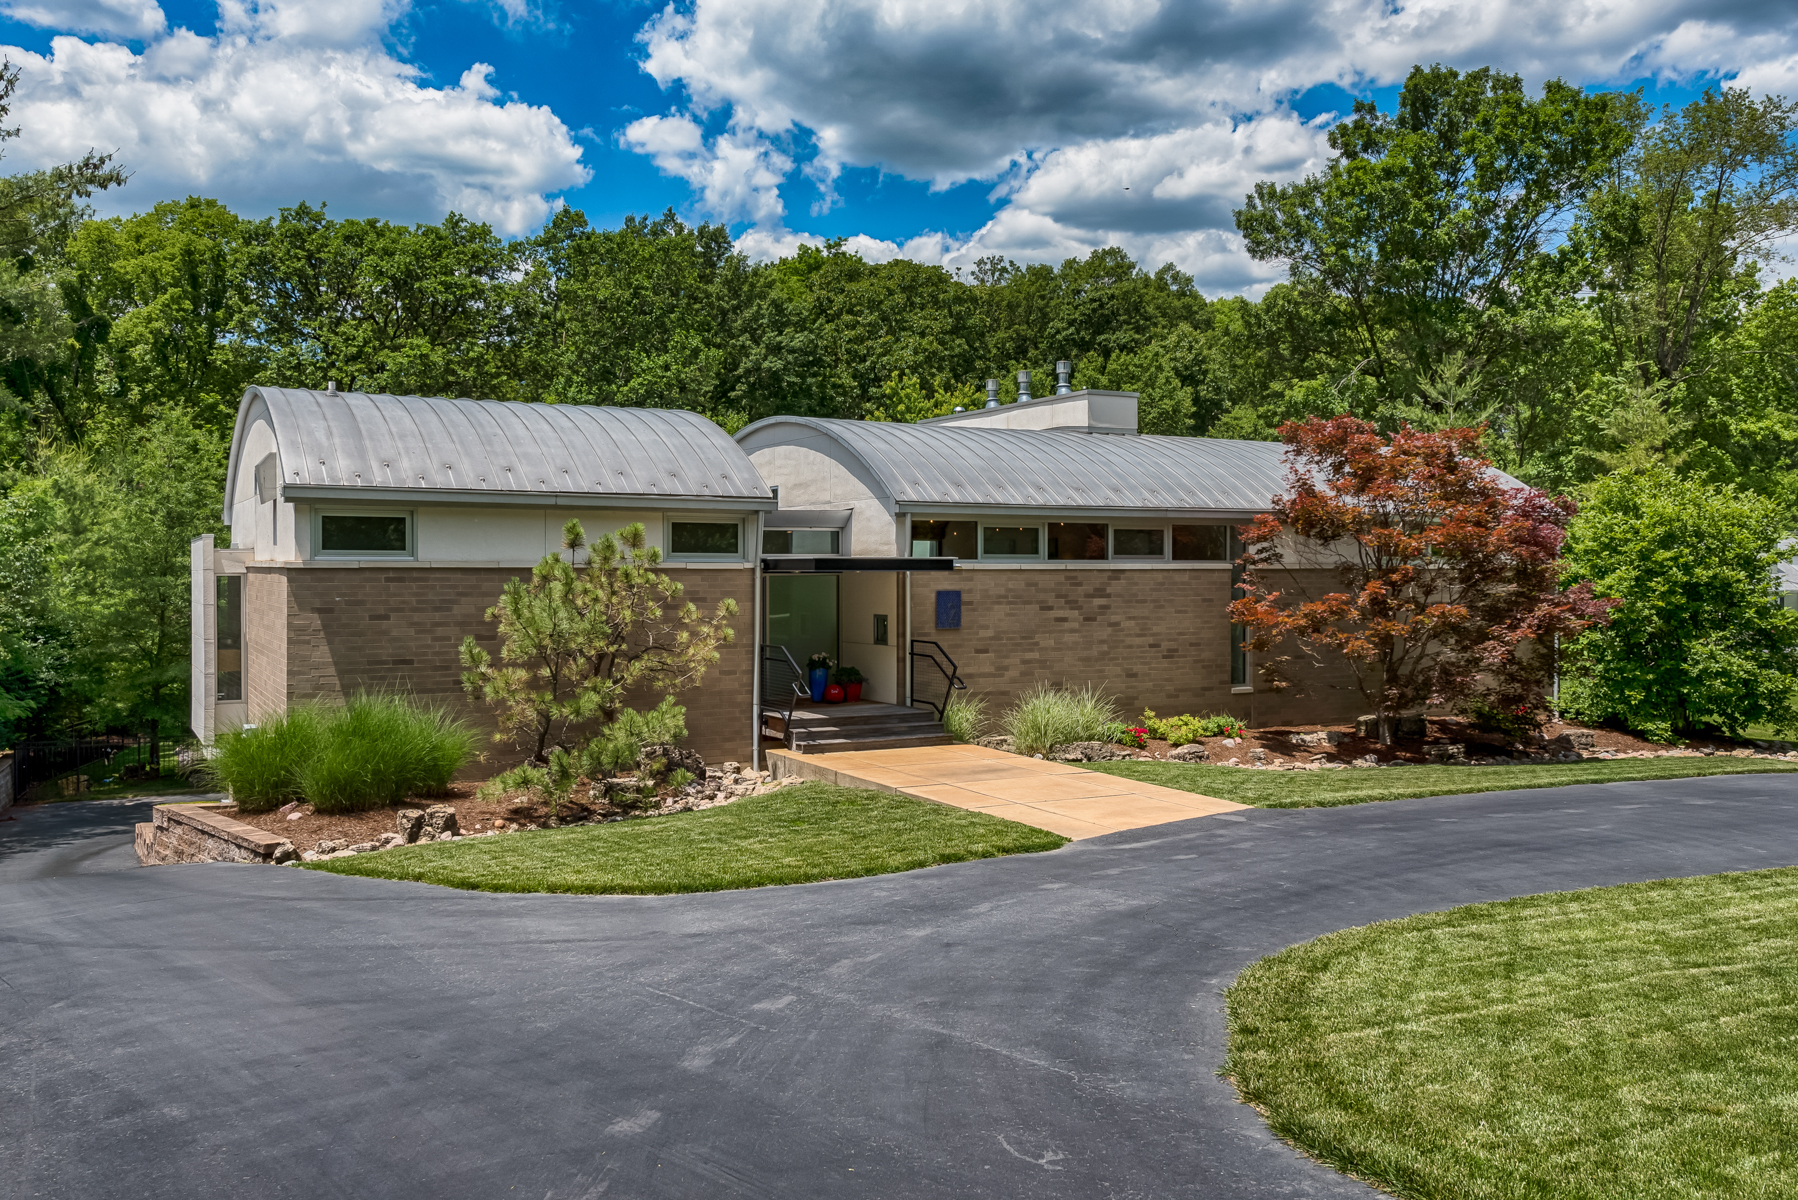 Casa Unifamiliar por un Venta en Winding Brook 2 Winding Brook Lane Ladue, Missouri, 63124 Estados Unidos